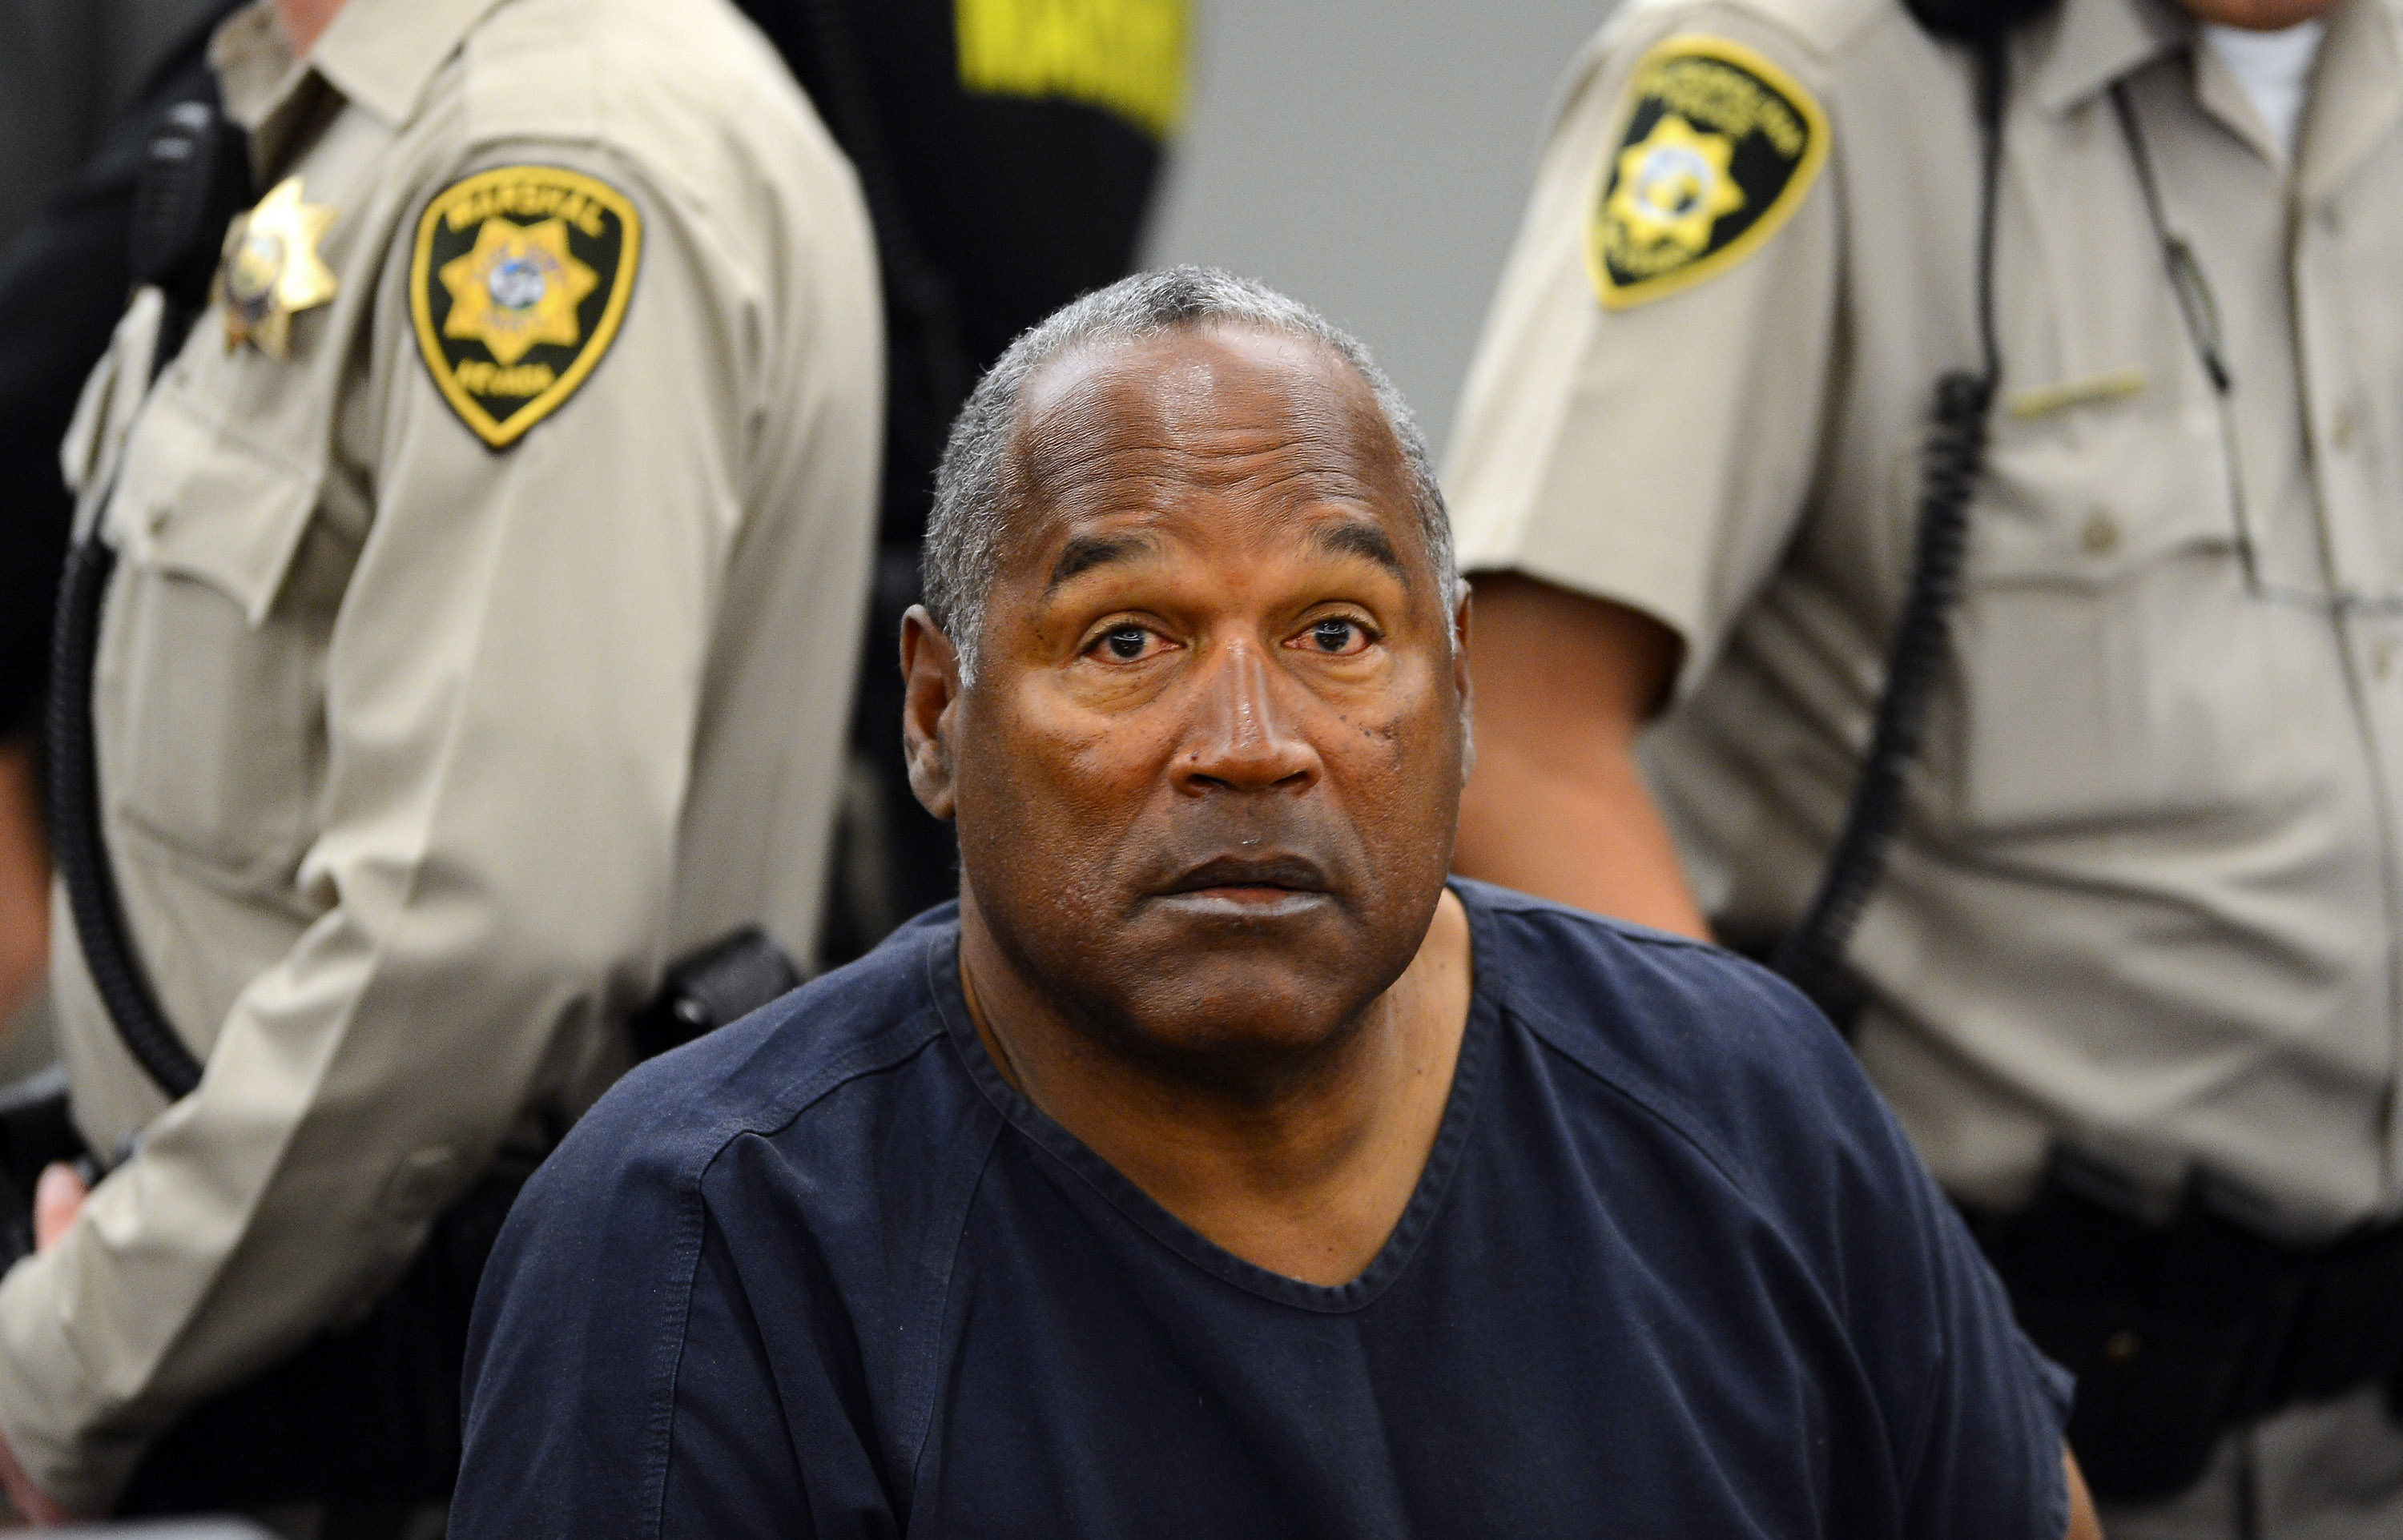 O.J. Simpson's 'Prison BFF' Speaks Out